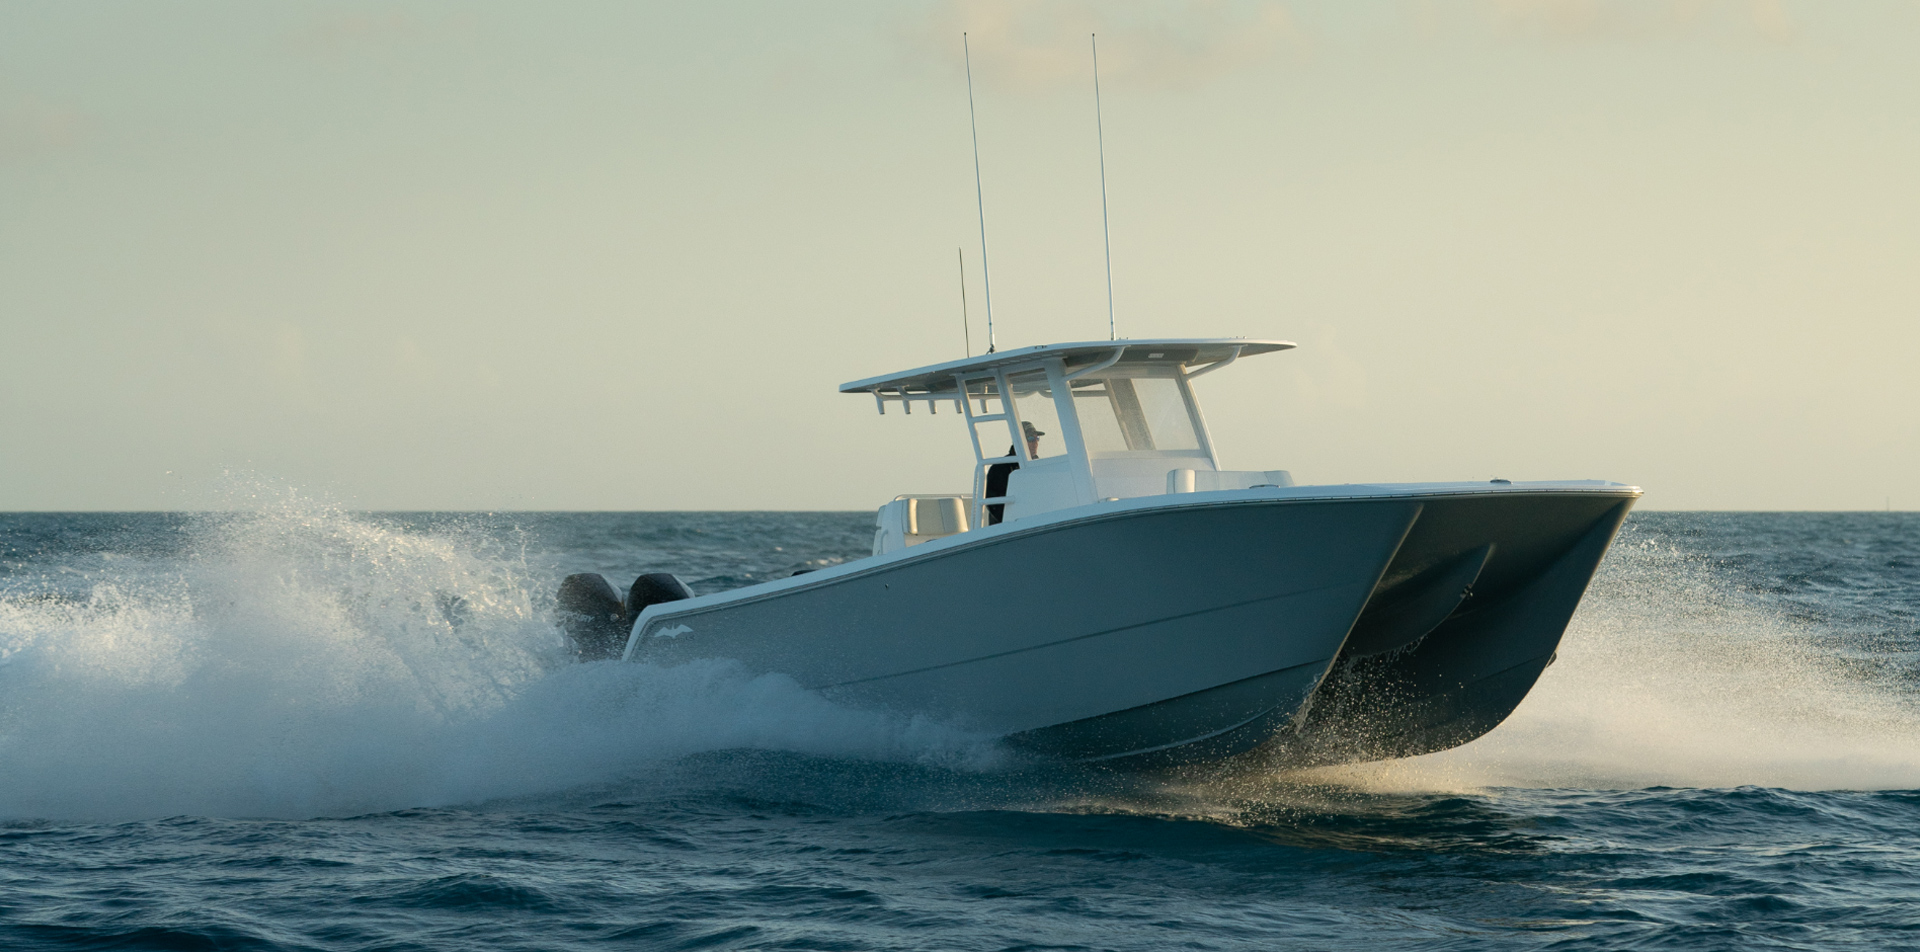 World-class 35 foot catamaran by Invincible Boats displaying perfectly designed twin hulls.